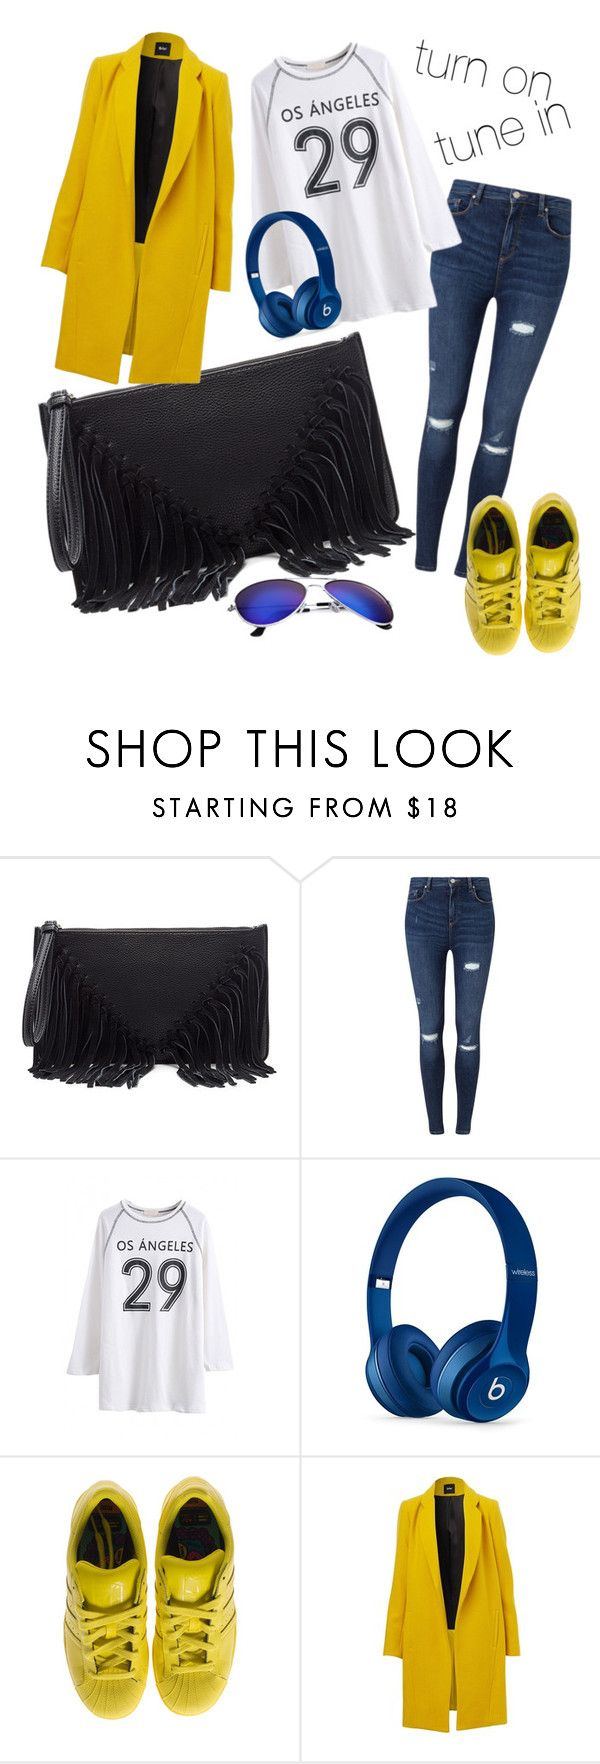 """""""turn on tune in"""" by sweetyincago ❤ liked on Polyvore featuring Sole Society, Miss Selfridge, Beats by Dr. Dre and adidas"""